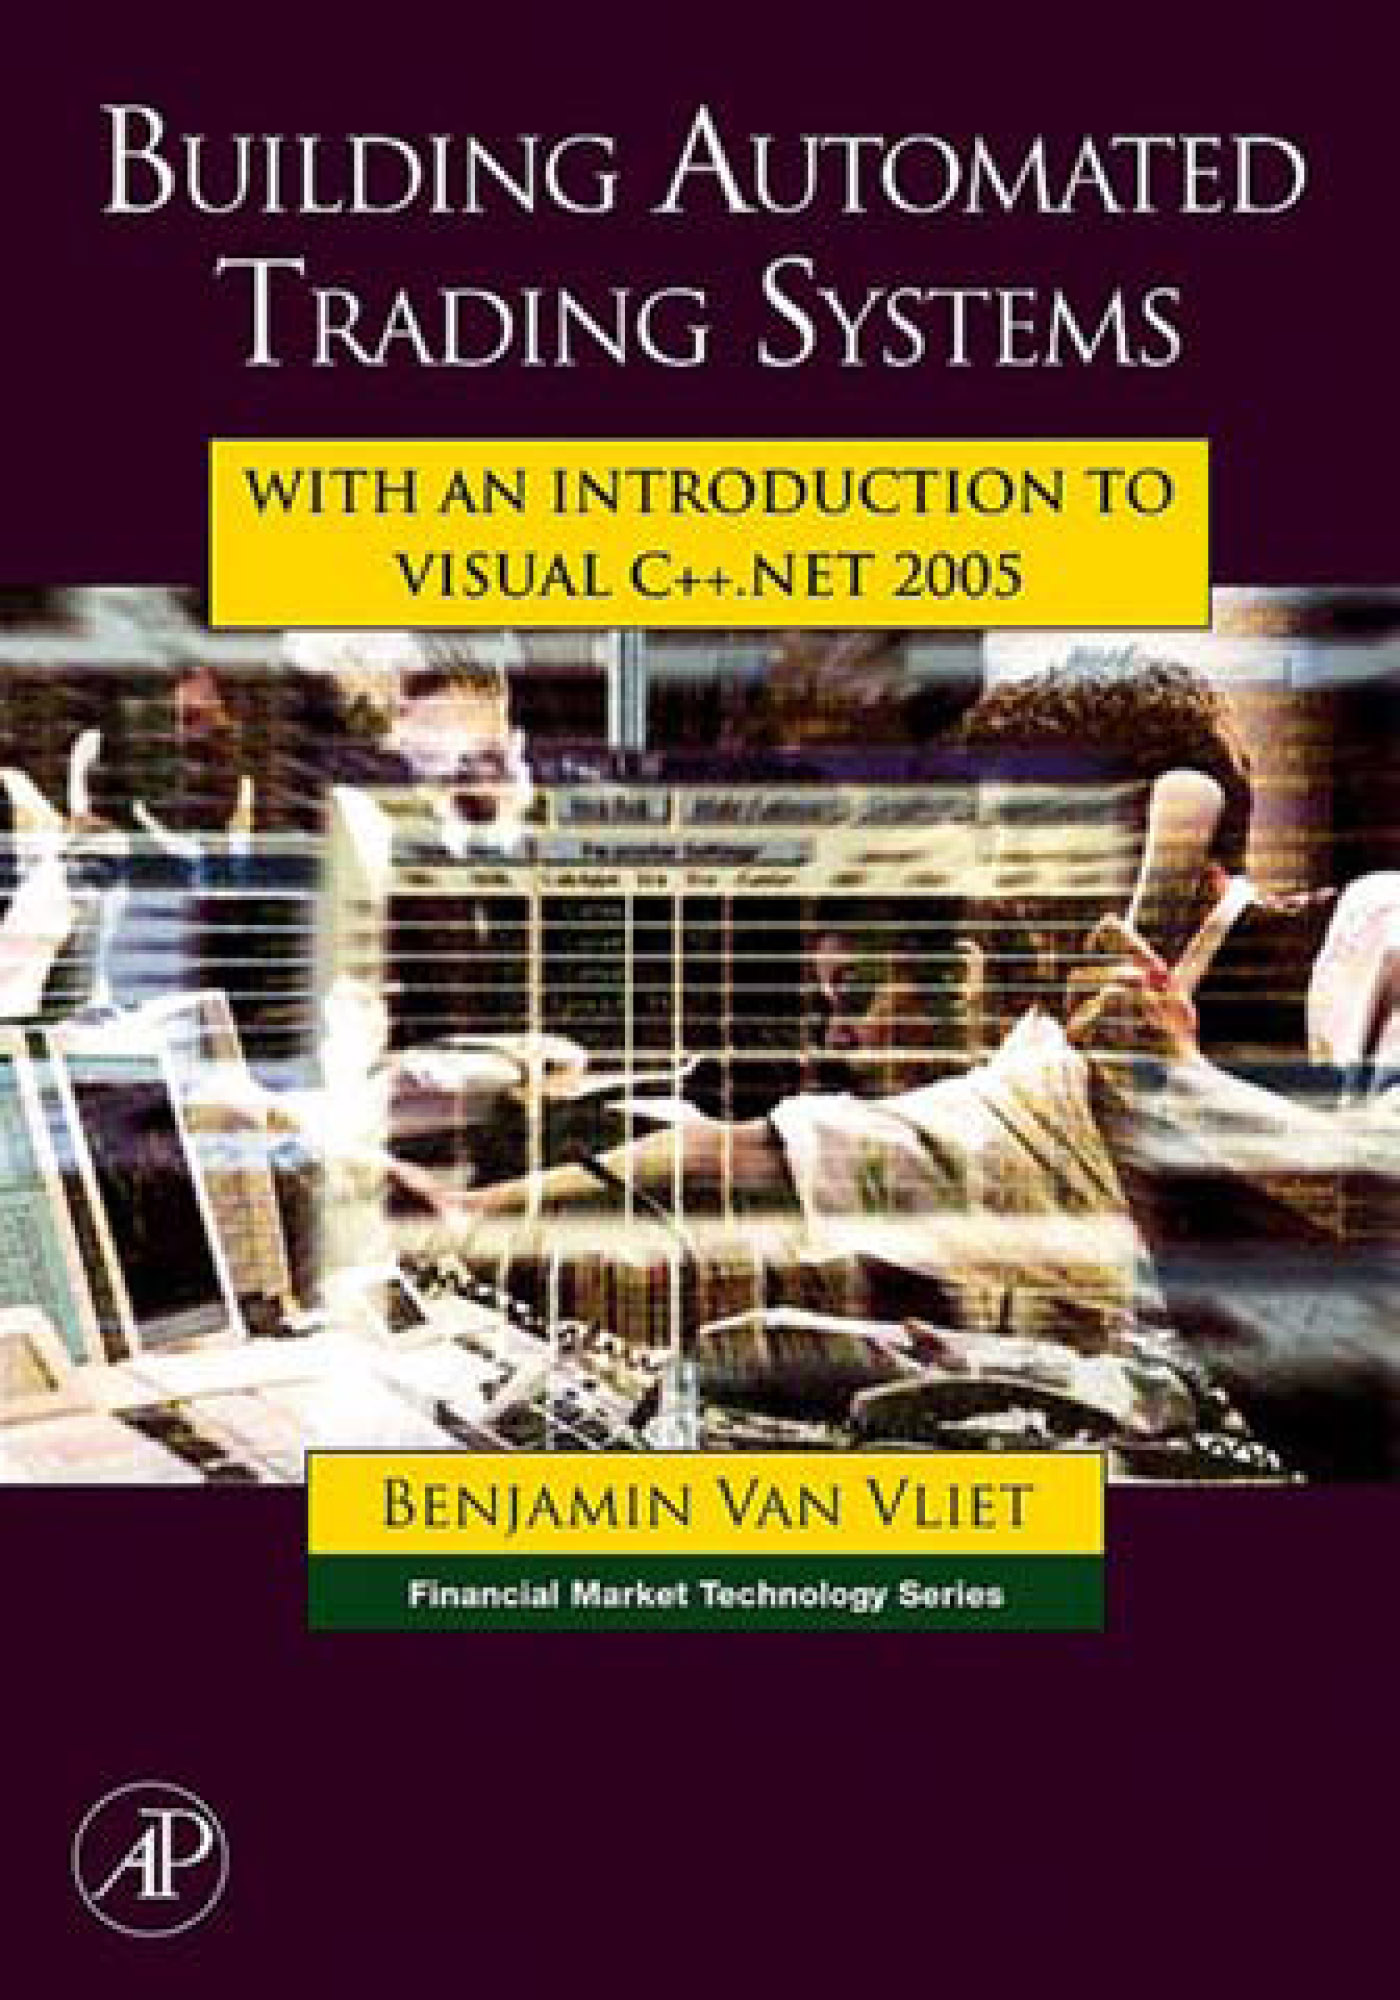 Download Ebook Building Automated Trading Systems by Benjamin Van Vliet Pdf